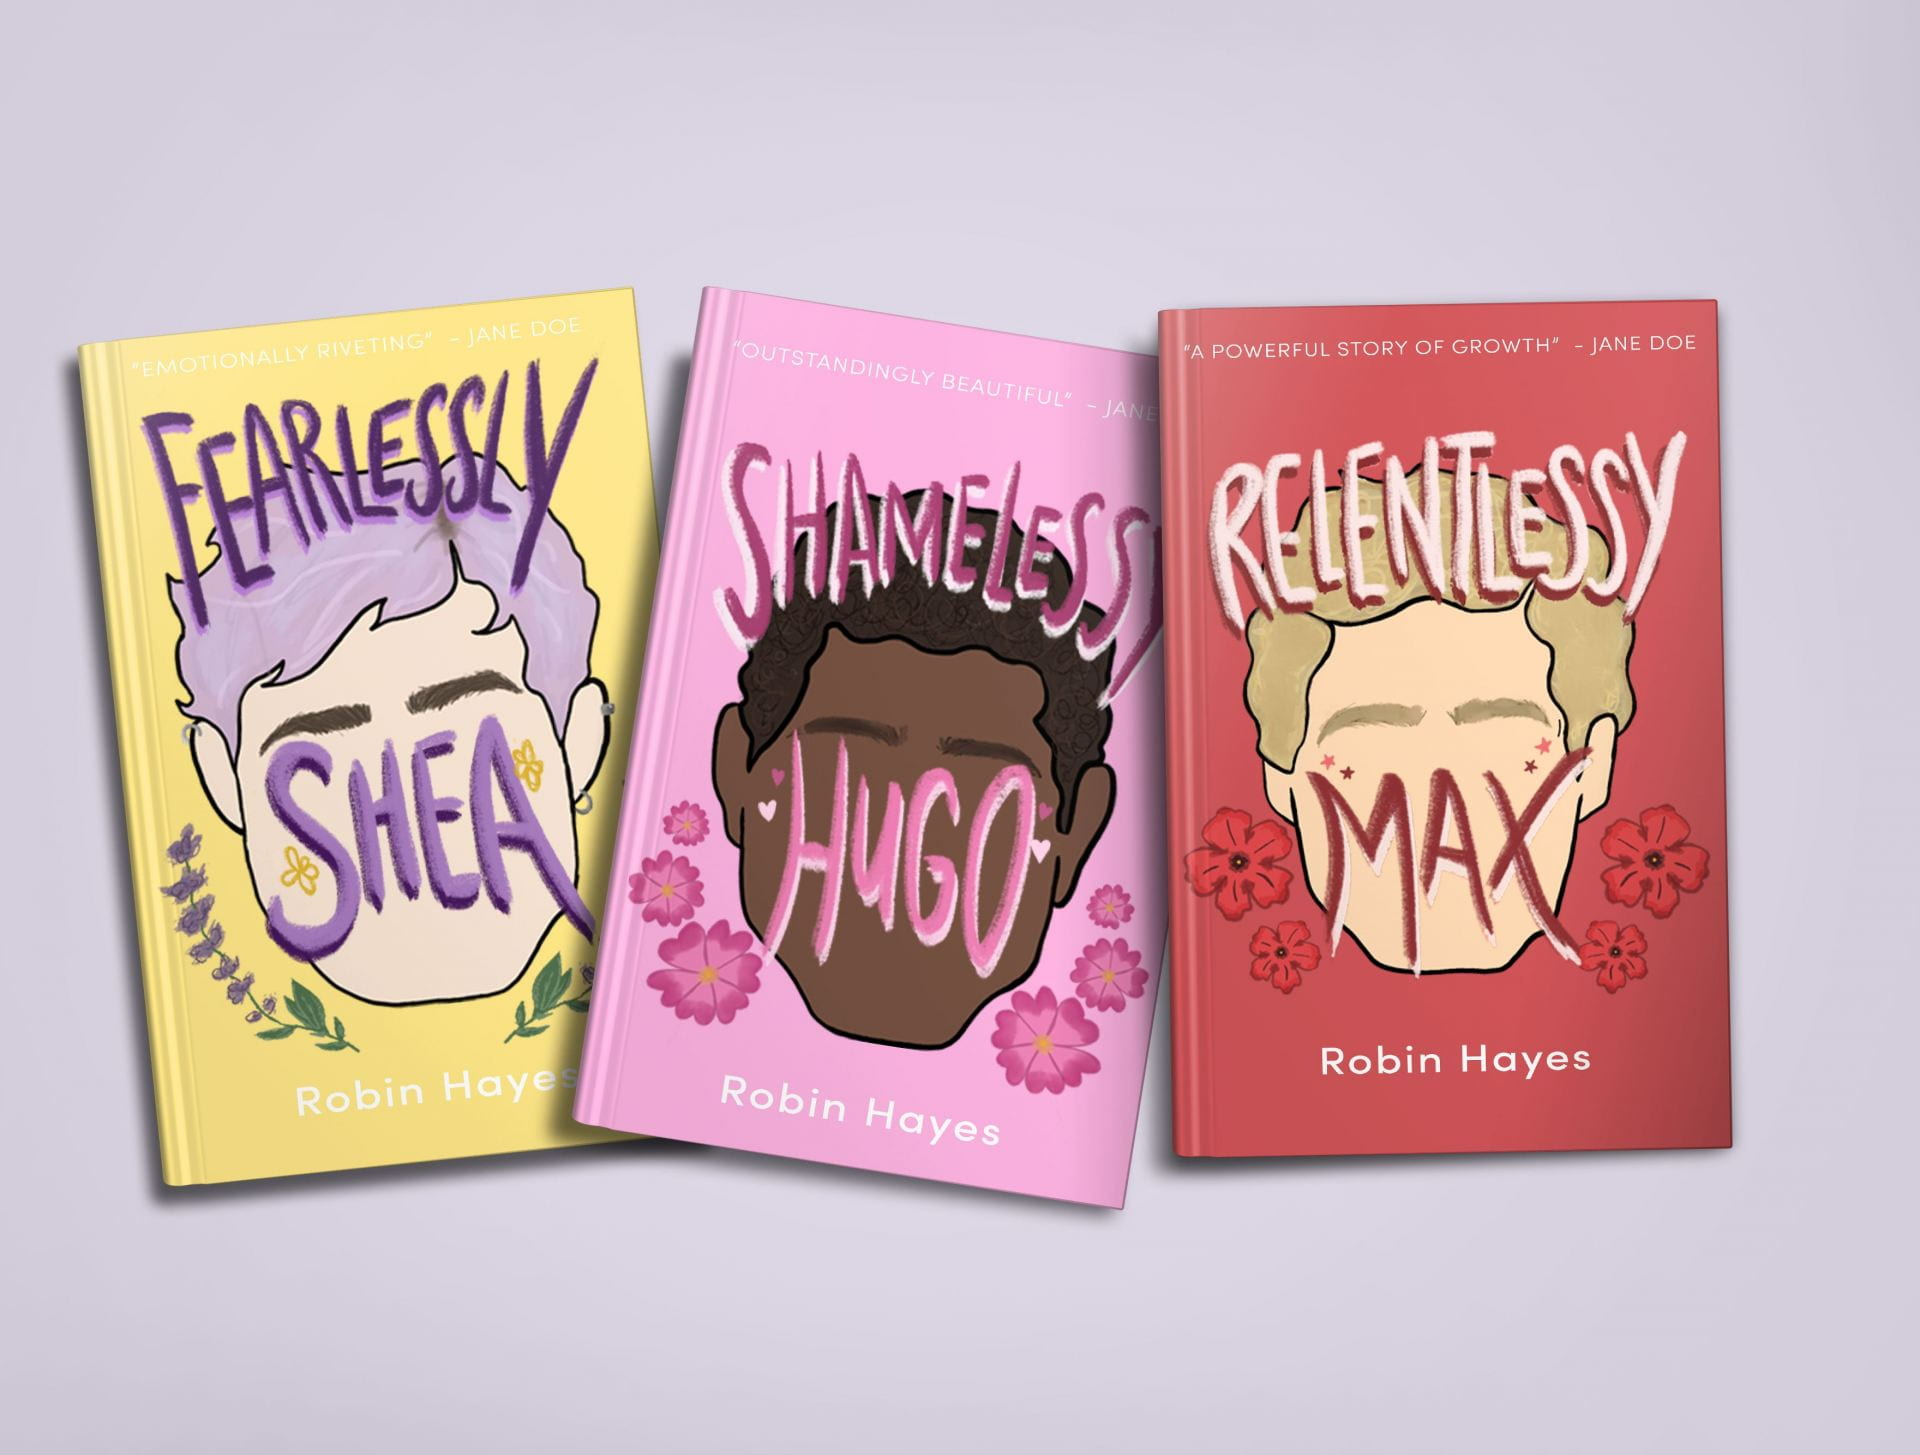 Yellow, pink and red Book cover designs.